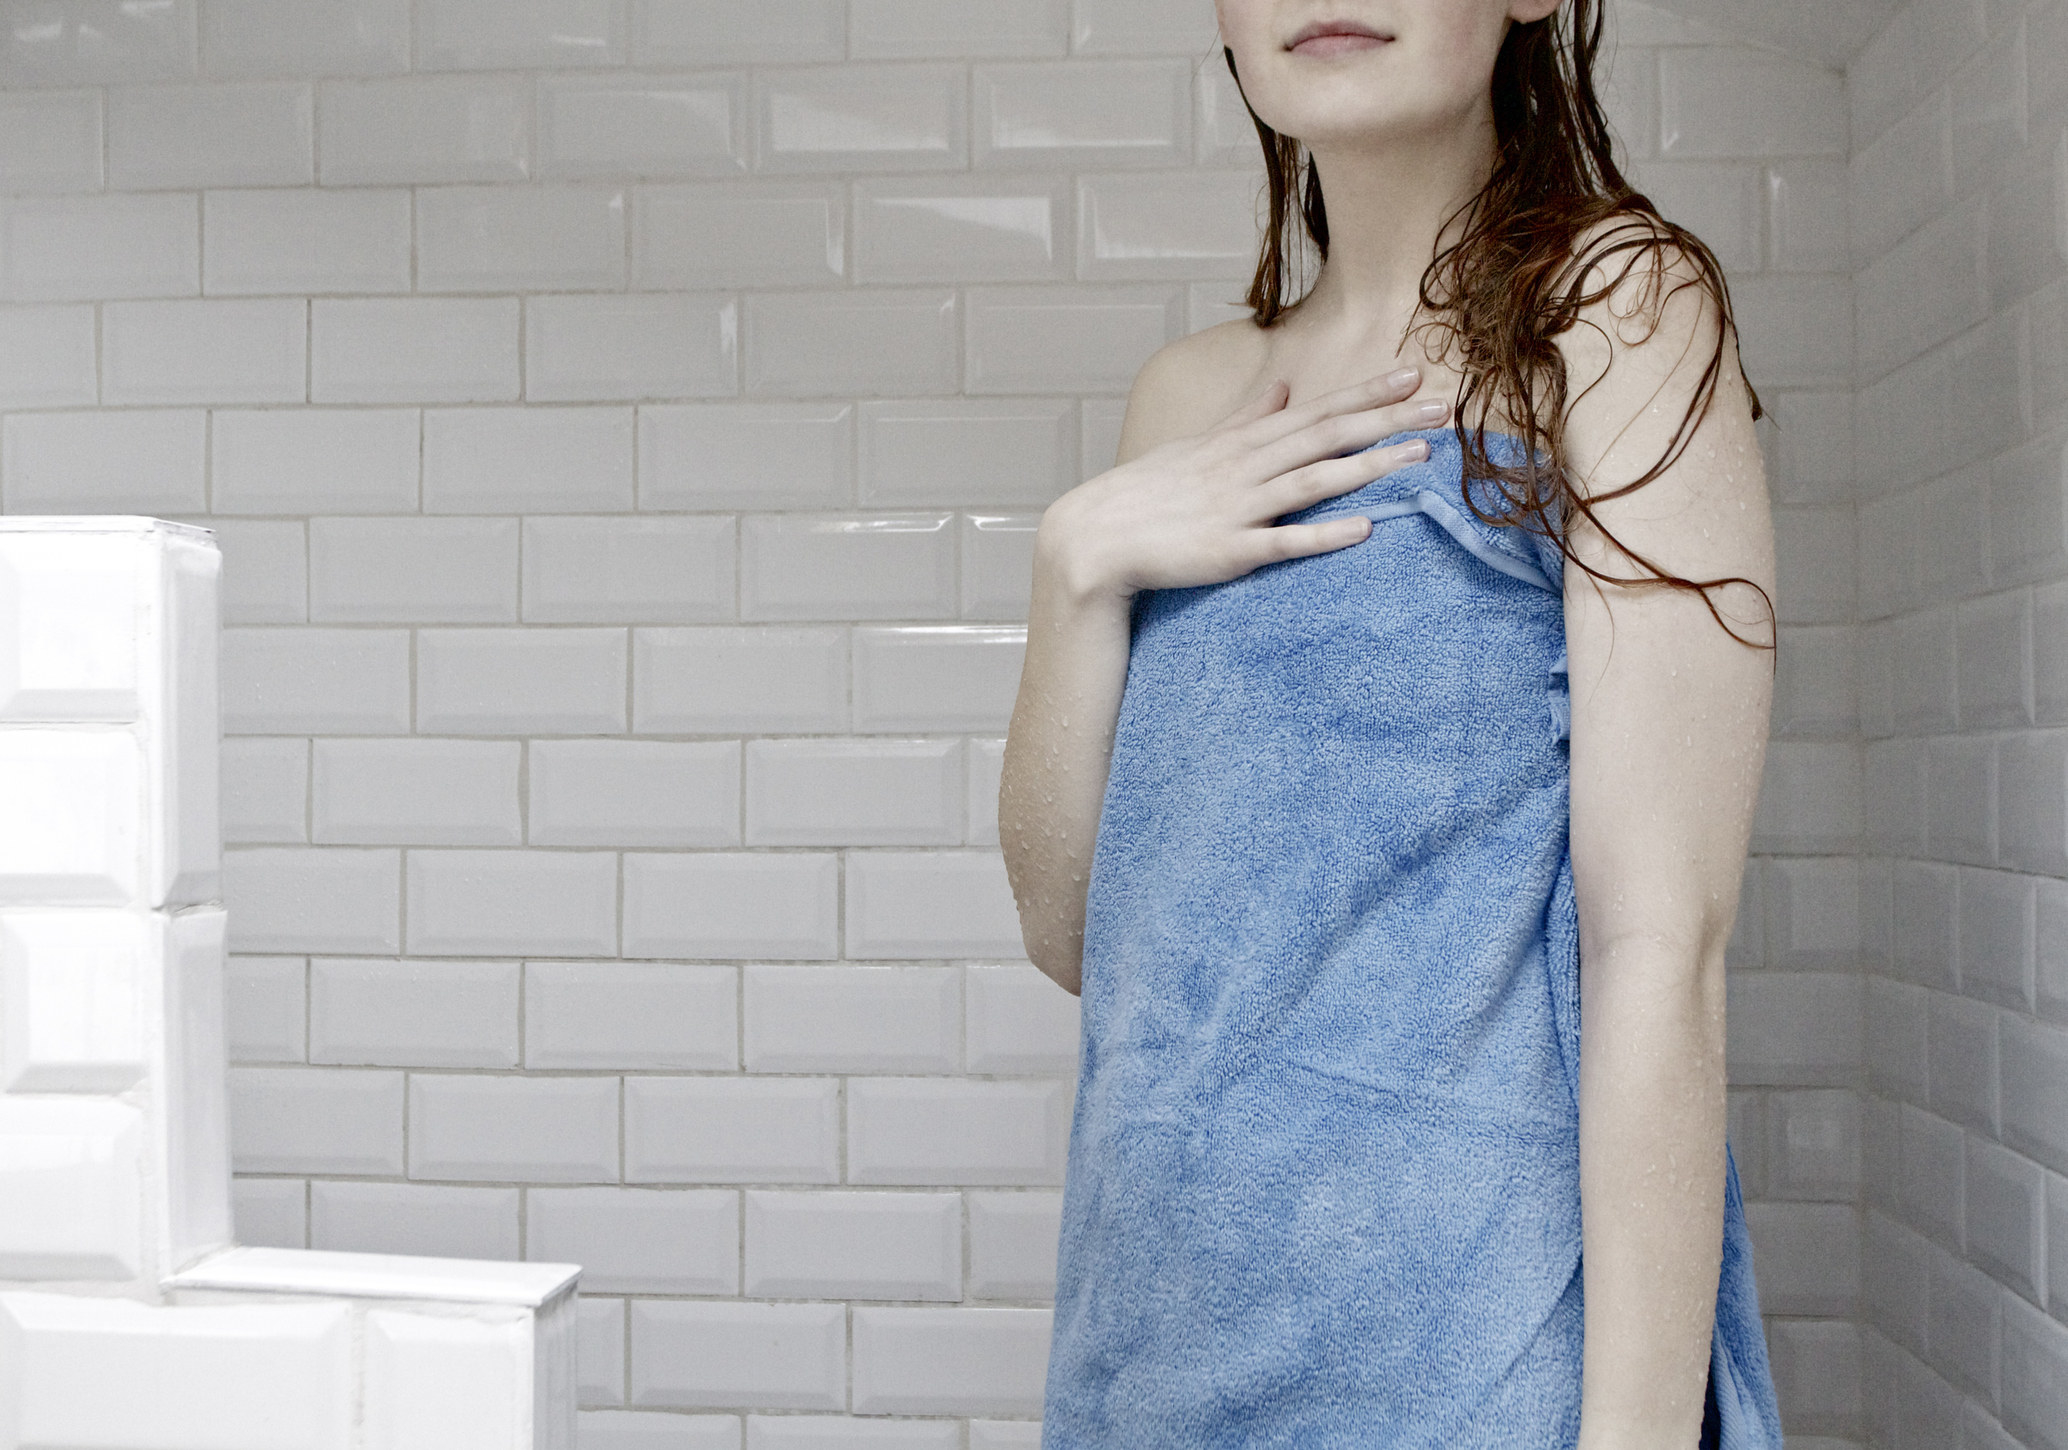 a woman stepping out of the shower